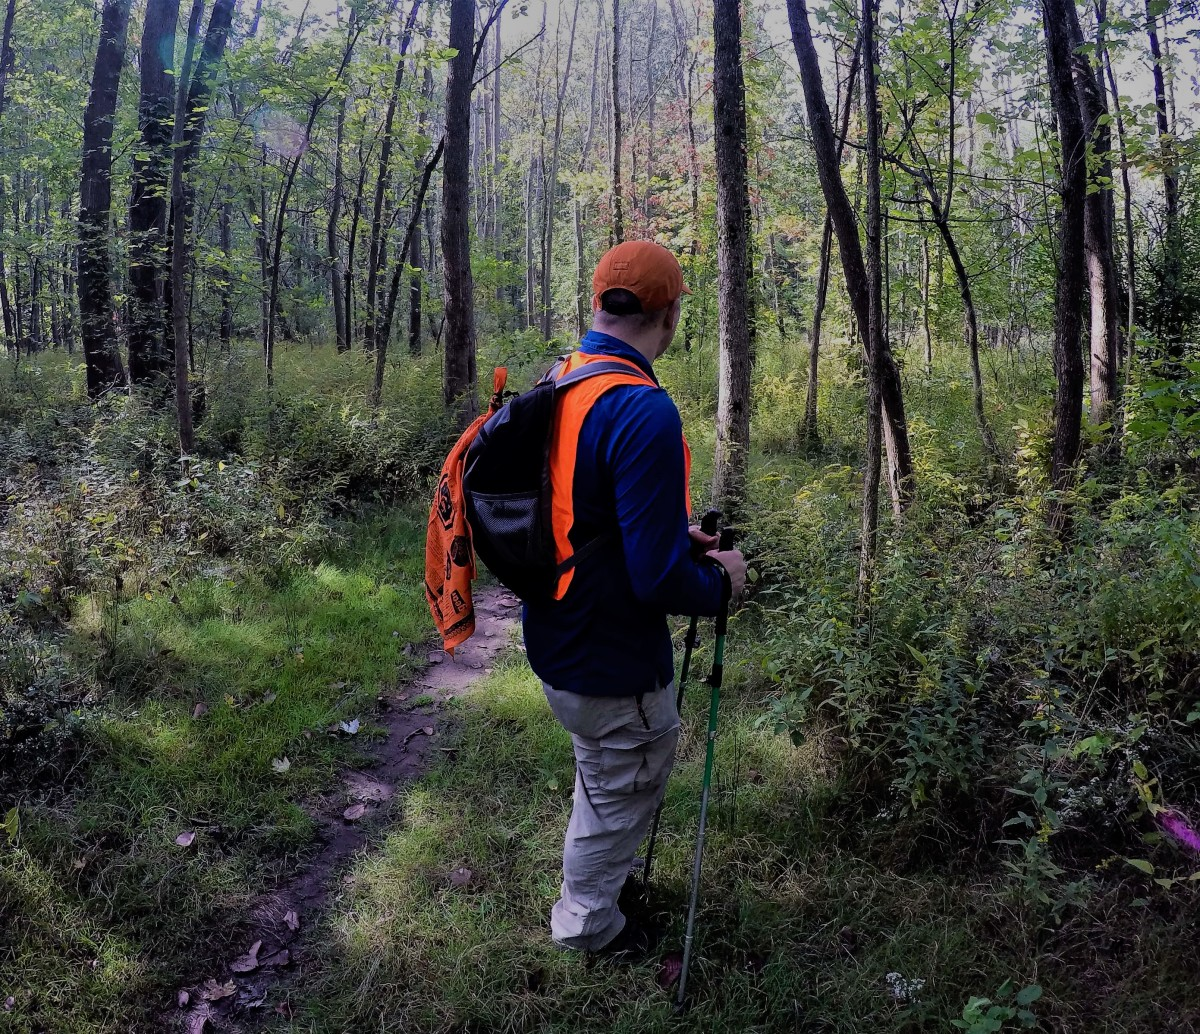 Keep safe while hiking during hunting season by wearing blaze orange.